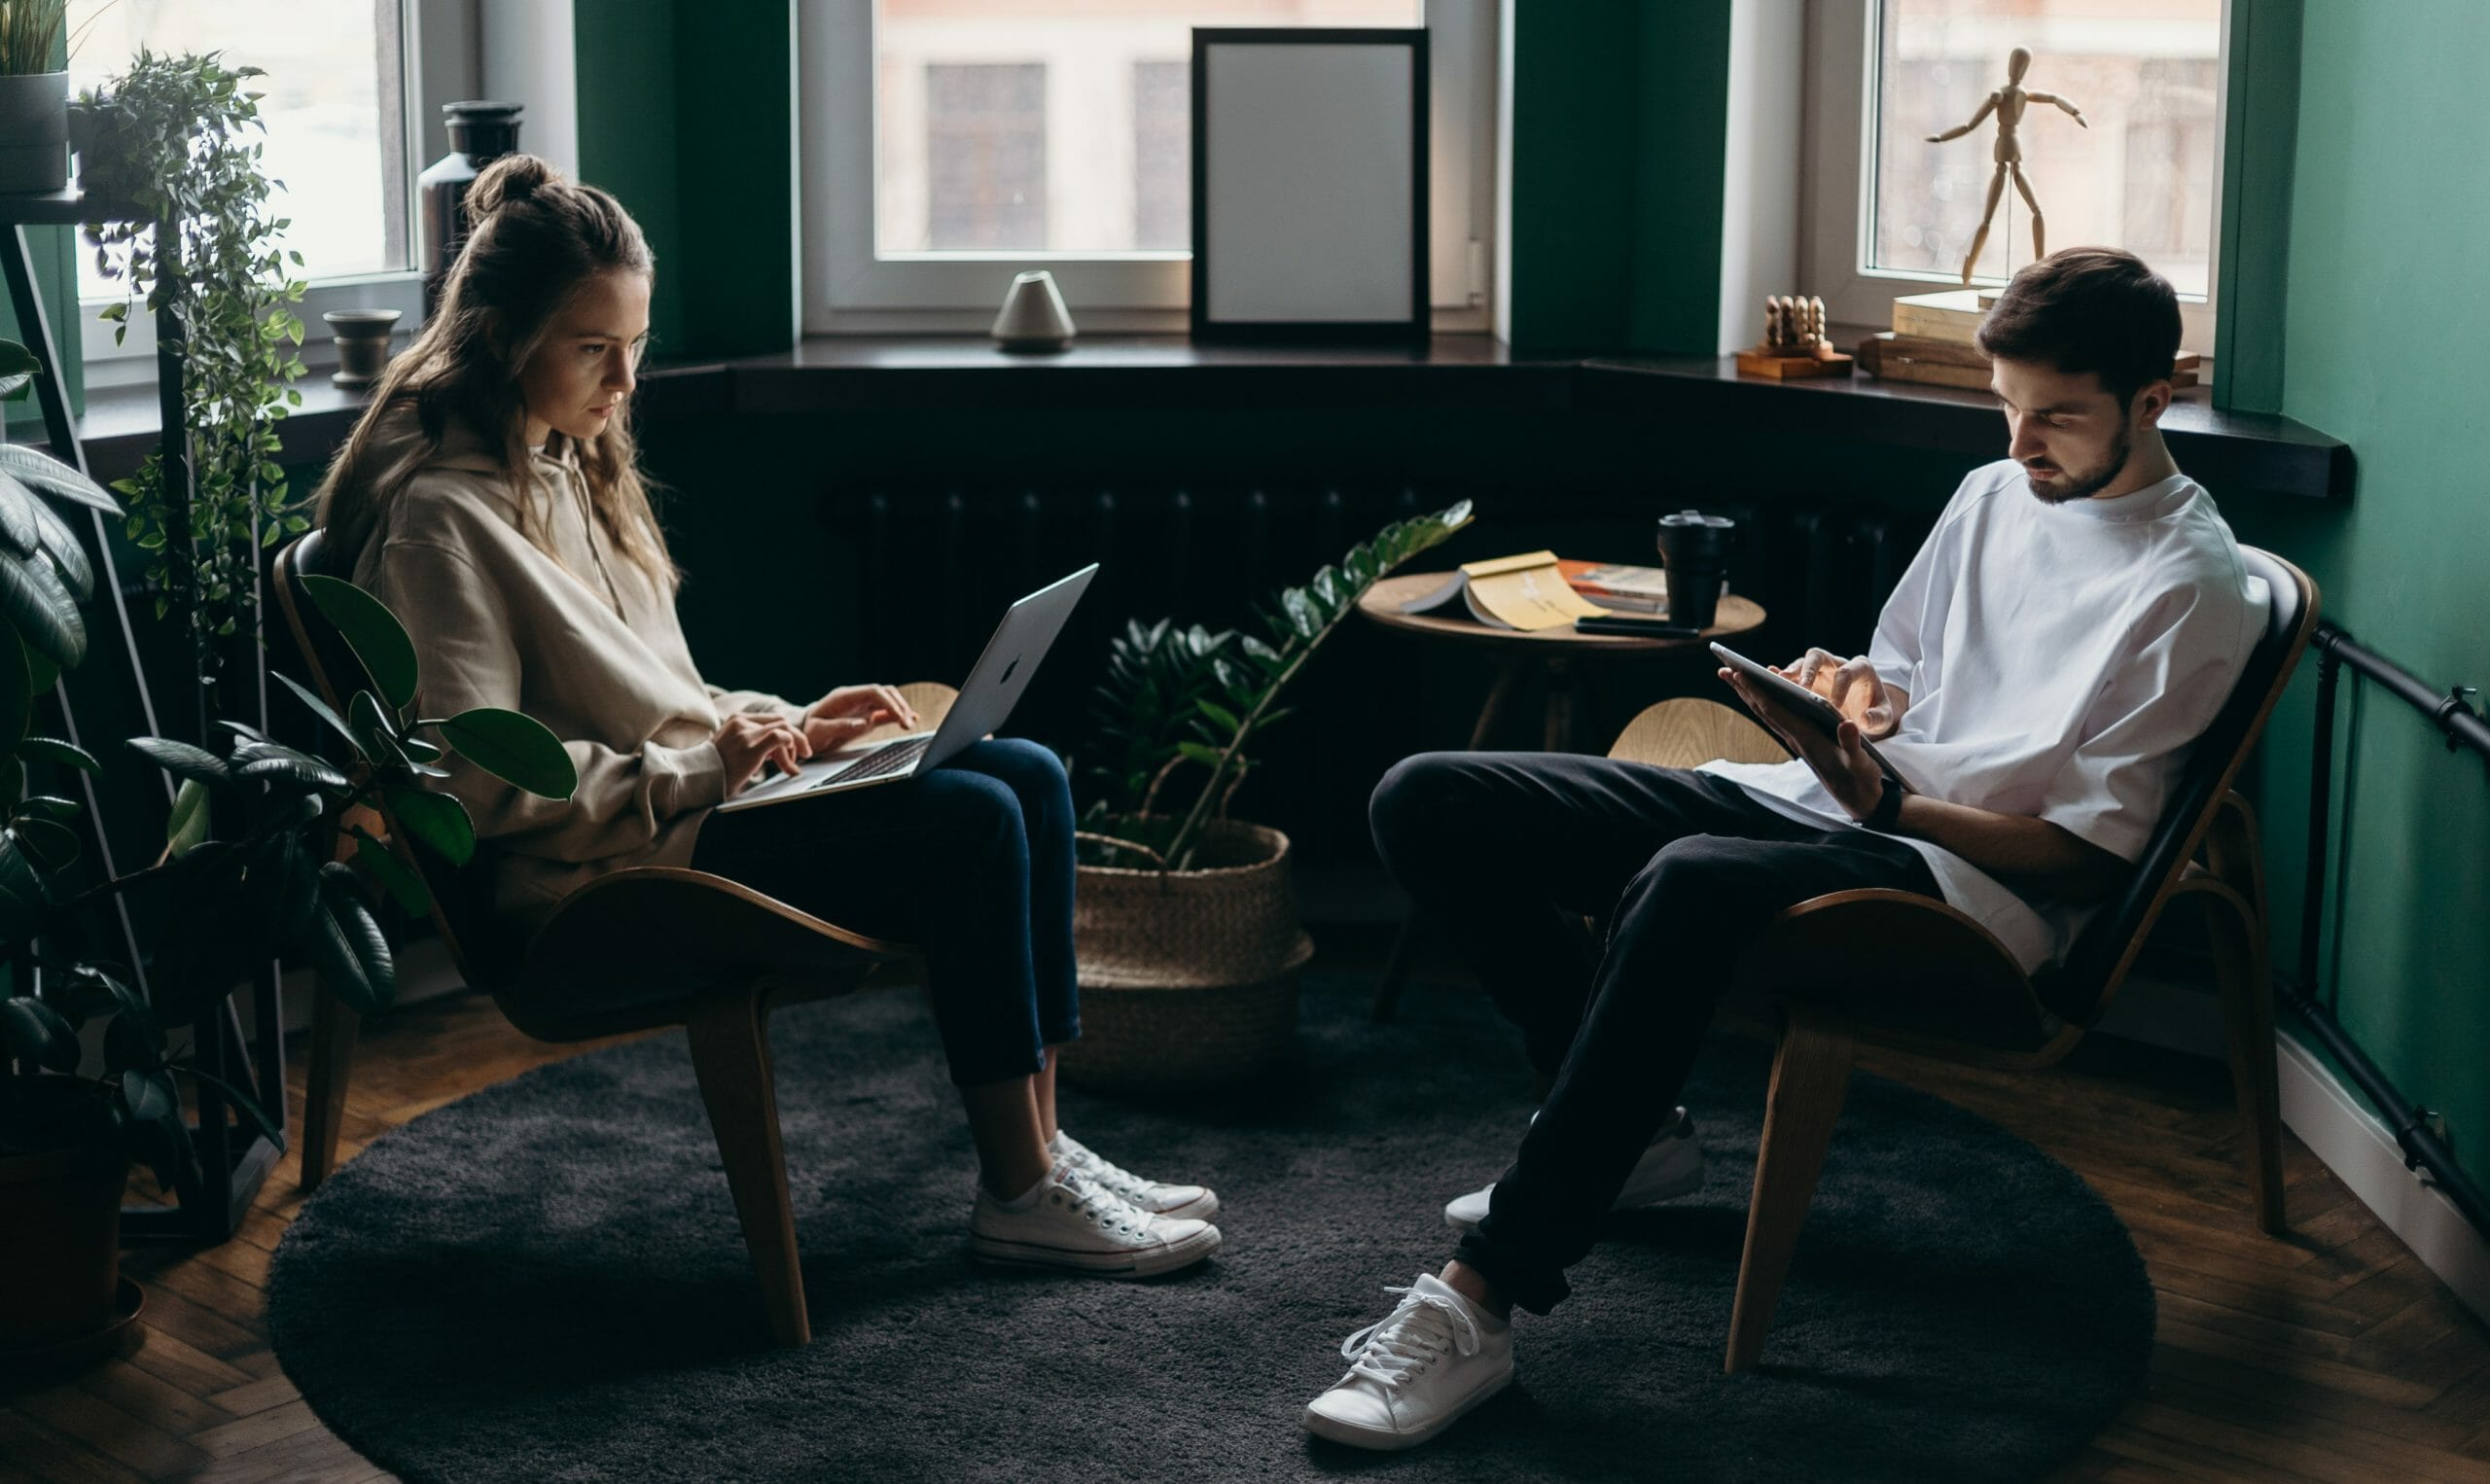 Get set up to work remotely, remotely